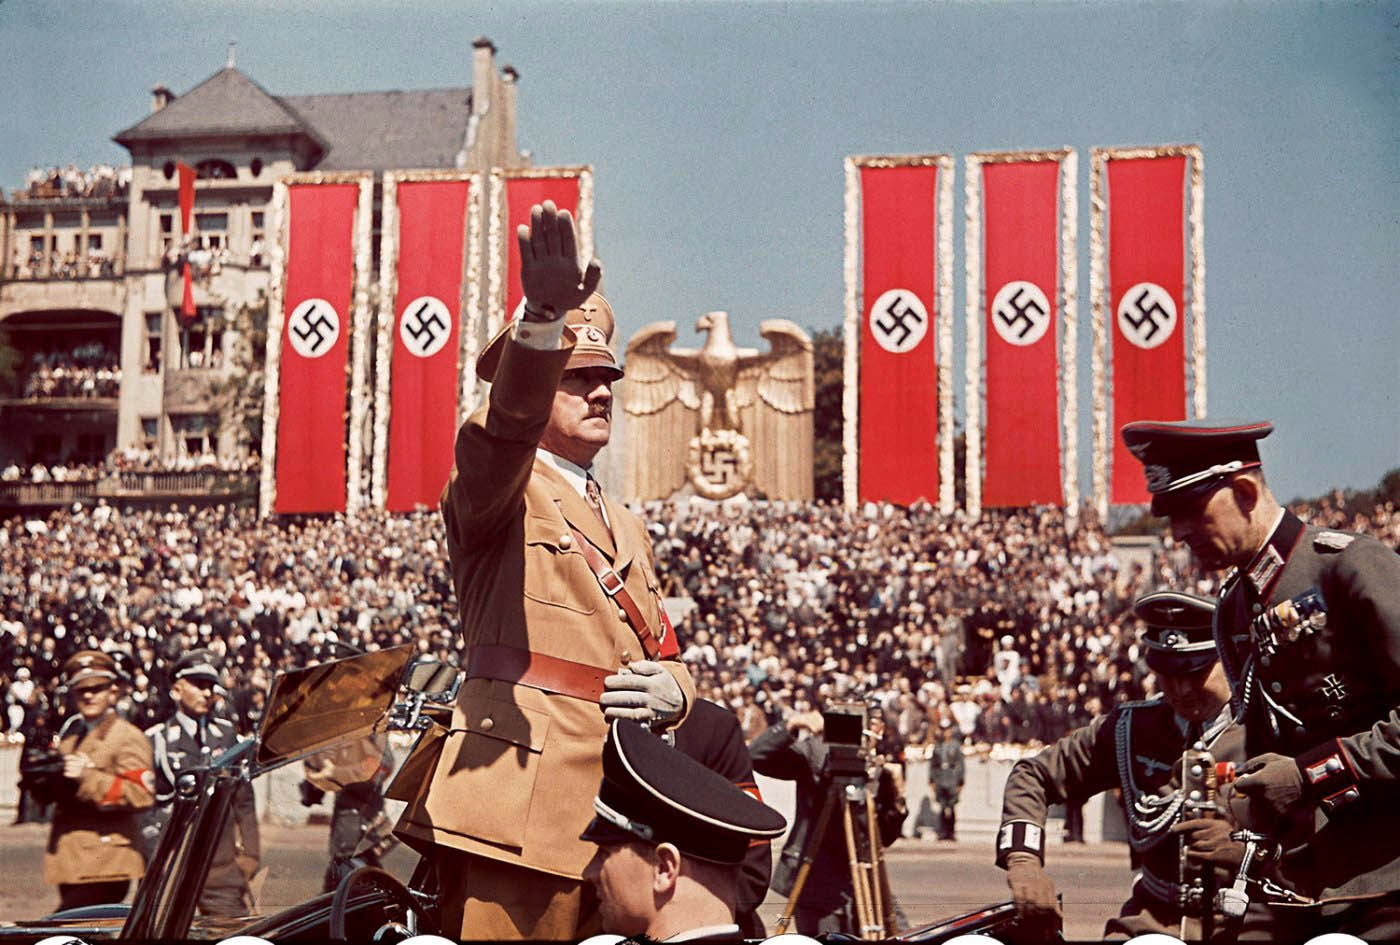 27 Million Died in Russia because Wall Street Built Up Hitler's Wehrmacht to Knock Out Soviet Union